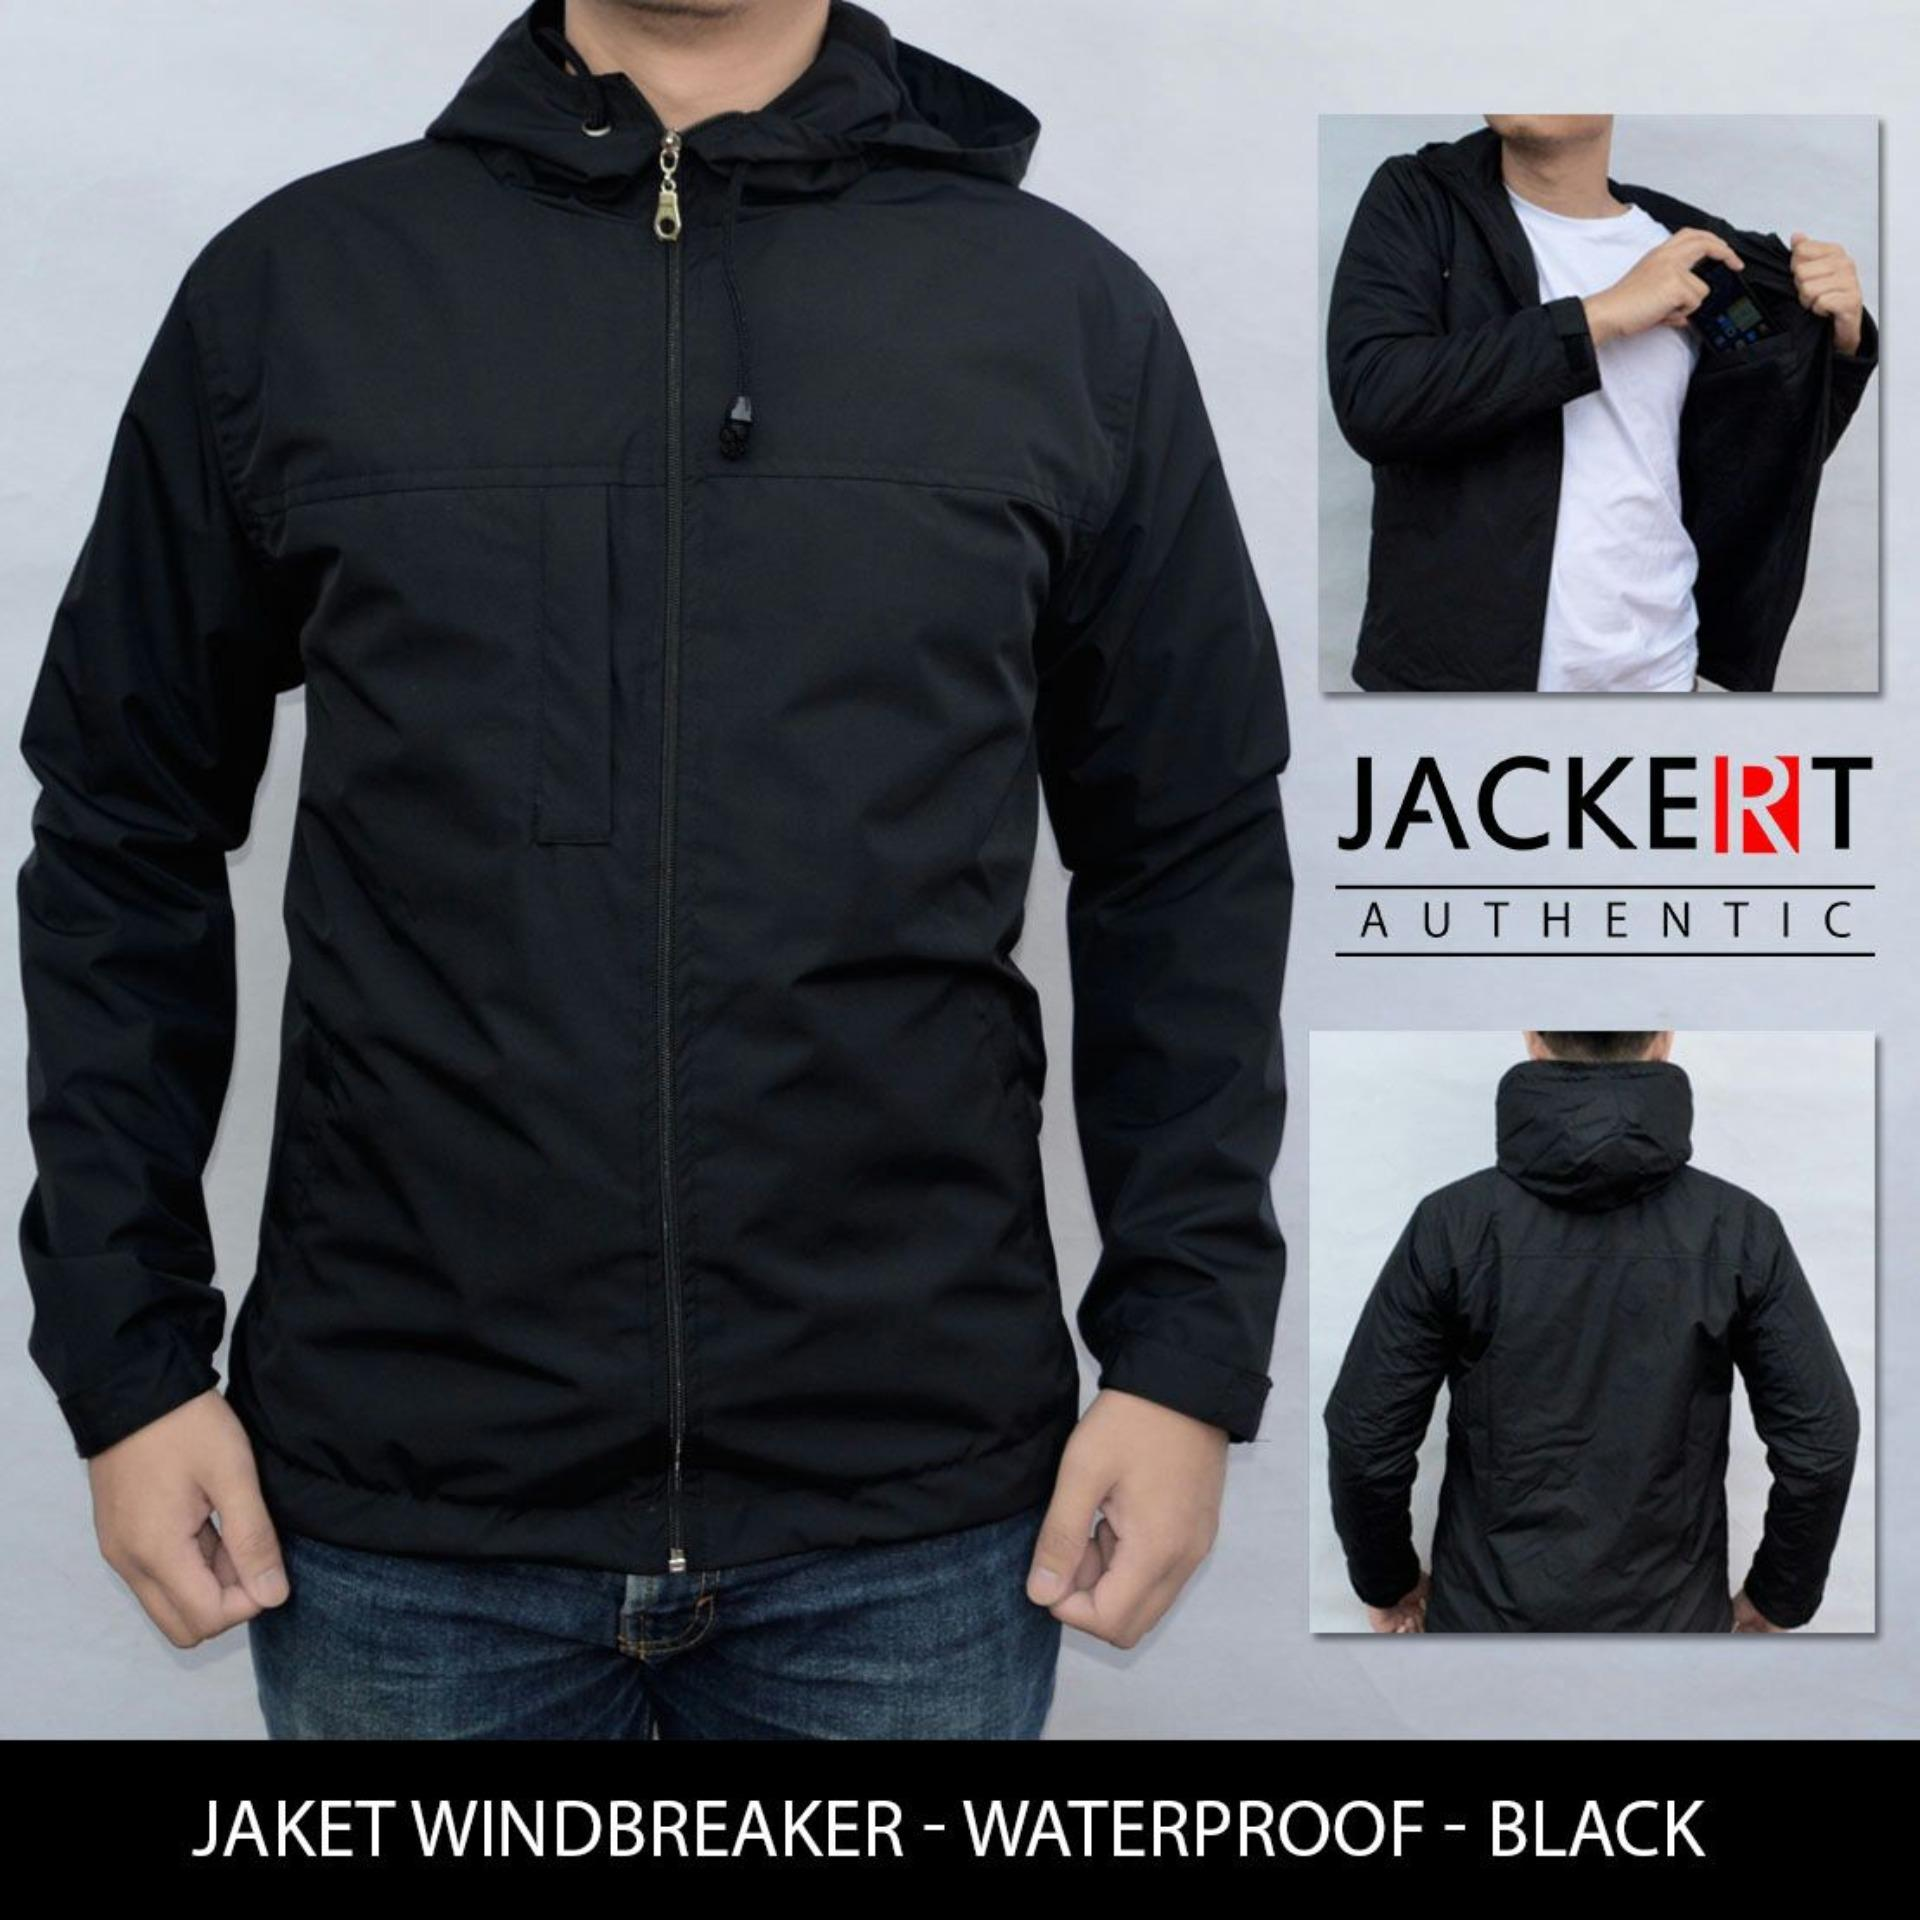 Beli Jaket Motor Harian Model Simple Polos Hitam Waterproof Semi Outdoor Jackert